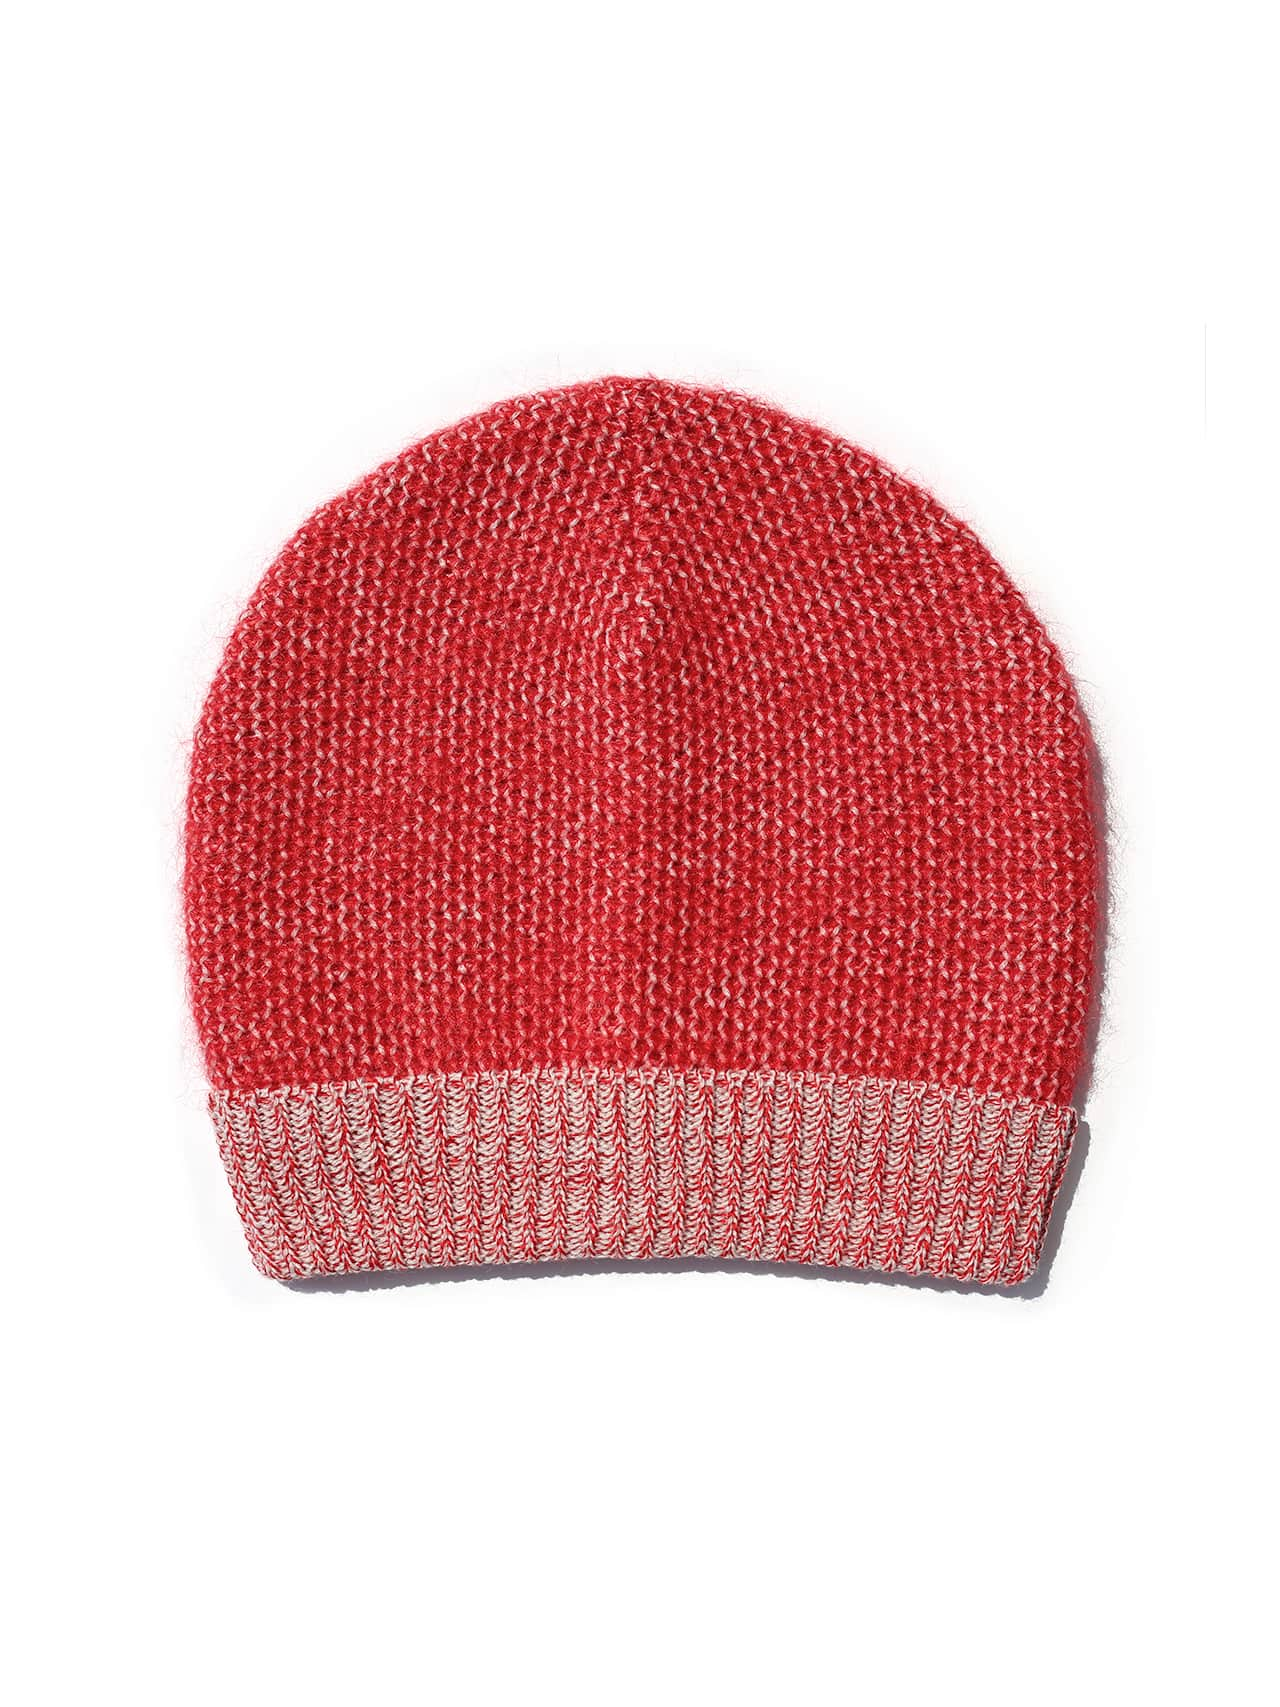 Paintbrush Beanie - Red & Ivory